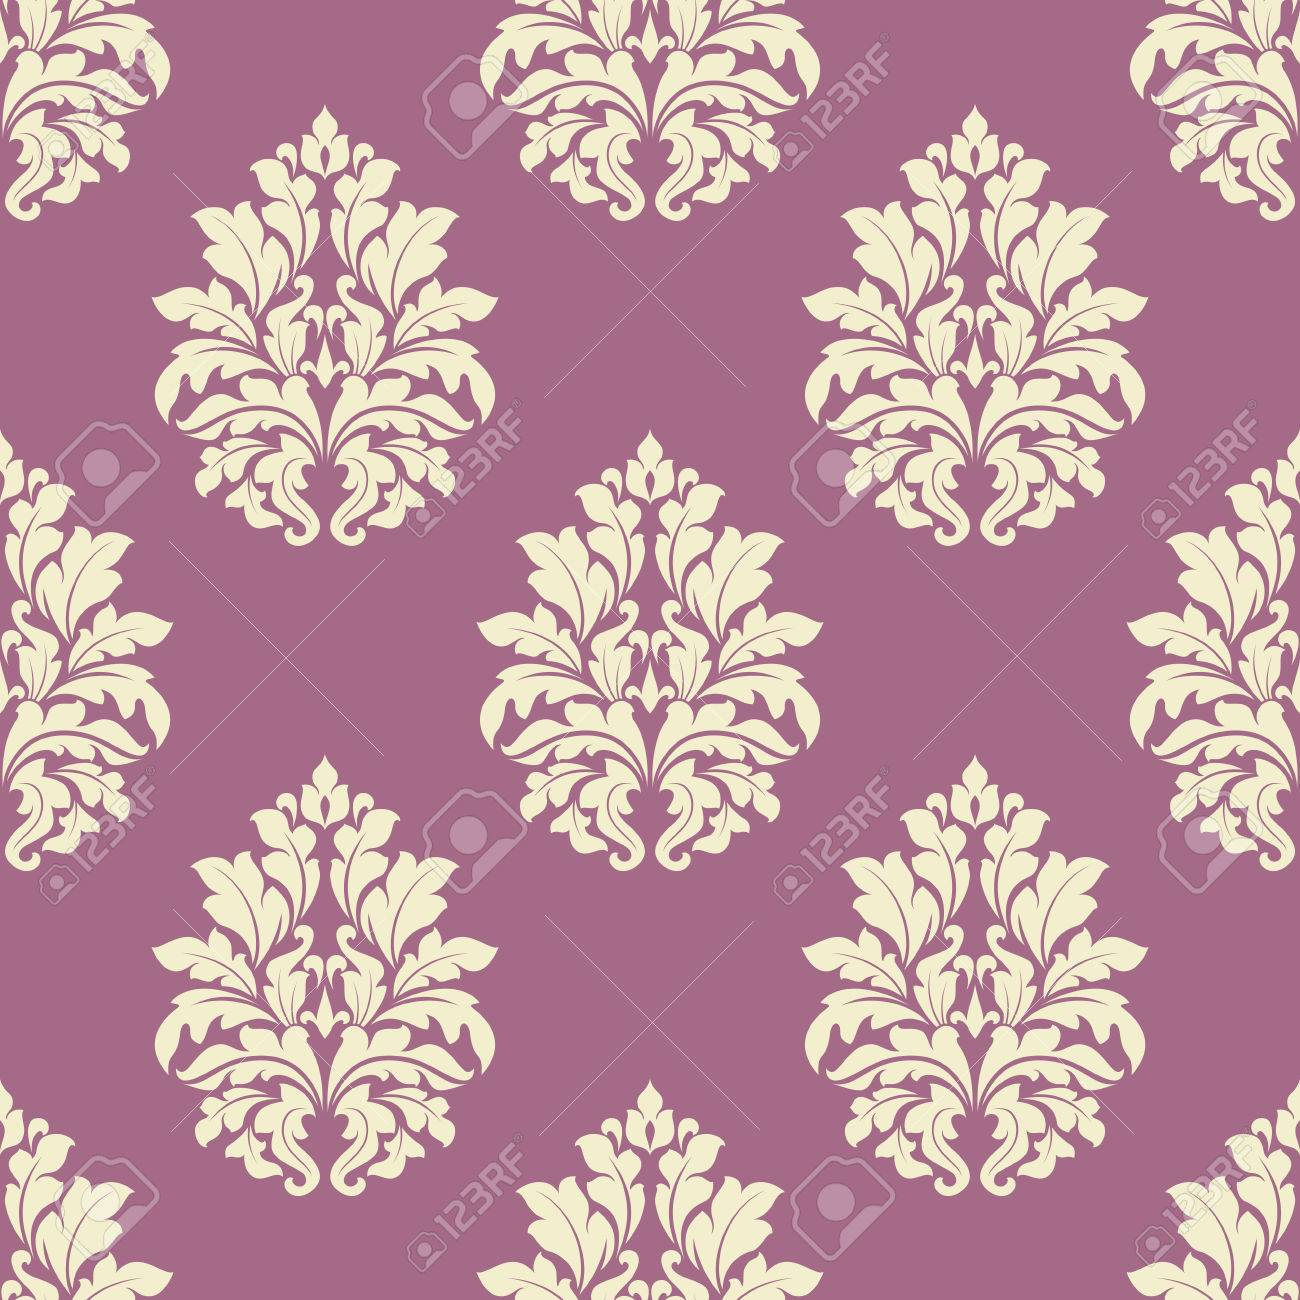 Floral seamless tracery of damask cream flowers with lush blooming floral seamless tracery of damask cream flowers with lush blooming on dusty pink background suited for mightylinksfo